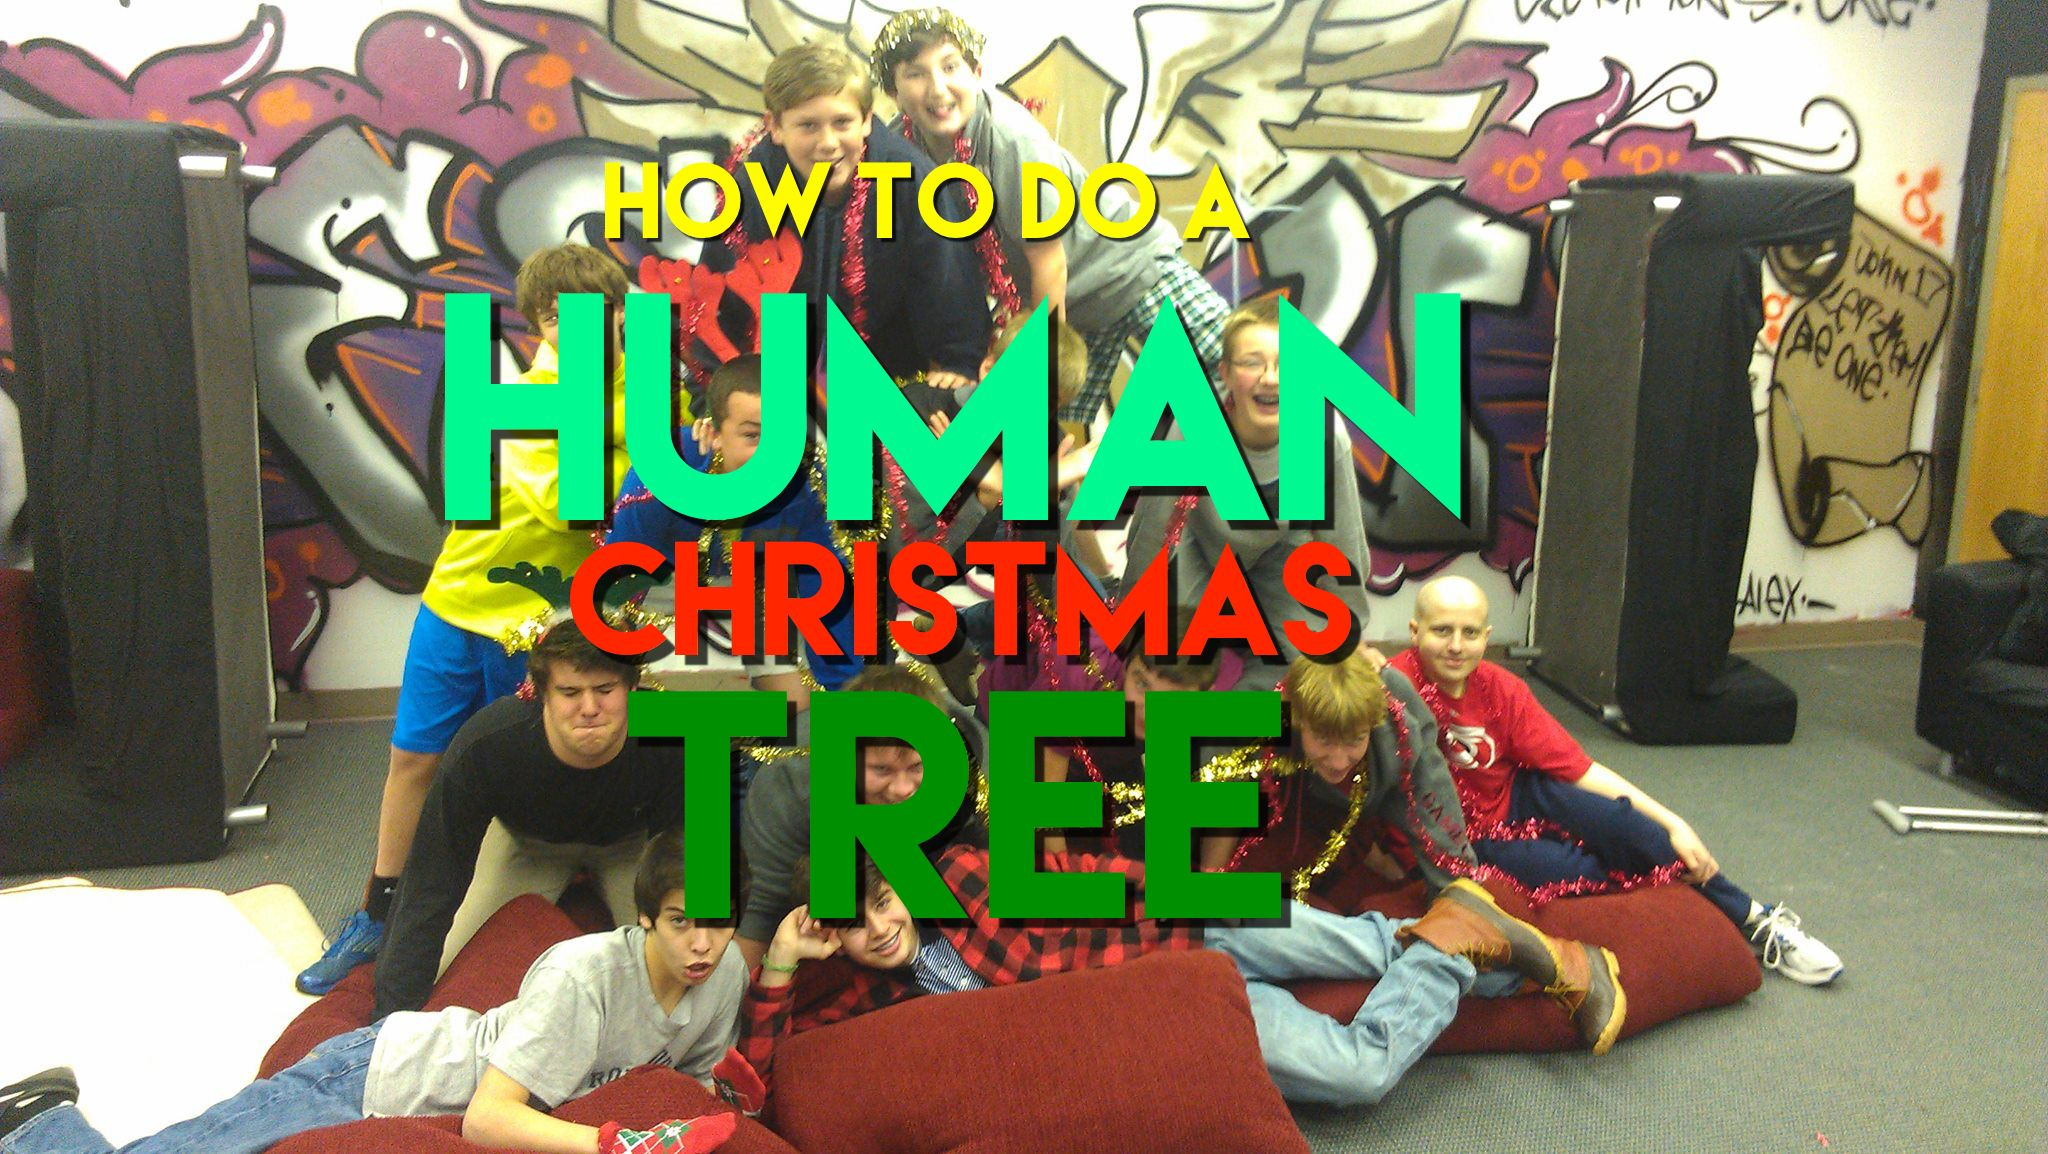 Free Christmas Youth Group Game Human Christmas Tree Christmas Youth Group Christmas Youth Christmas Youth Group Games